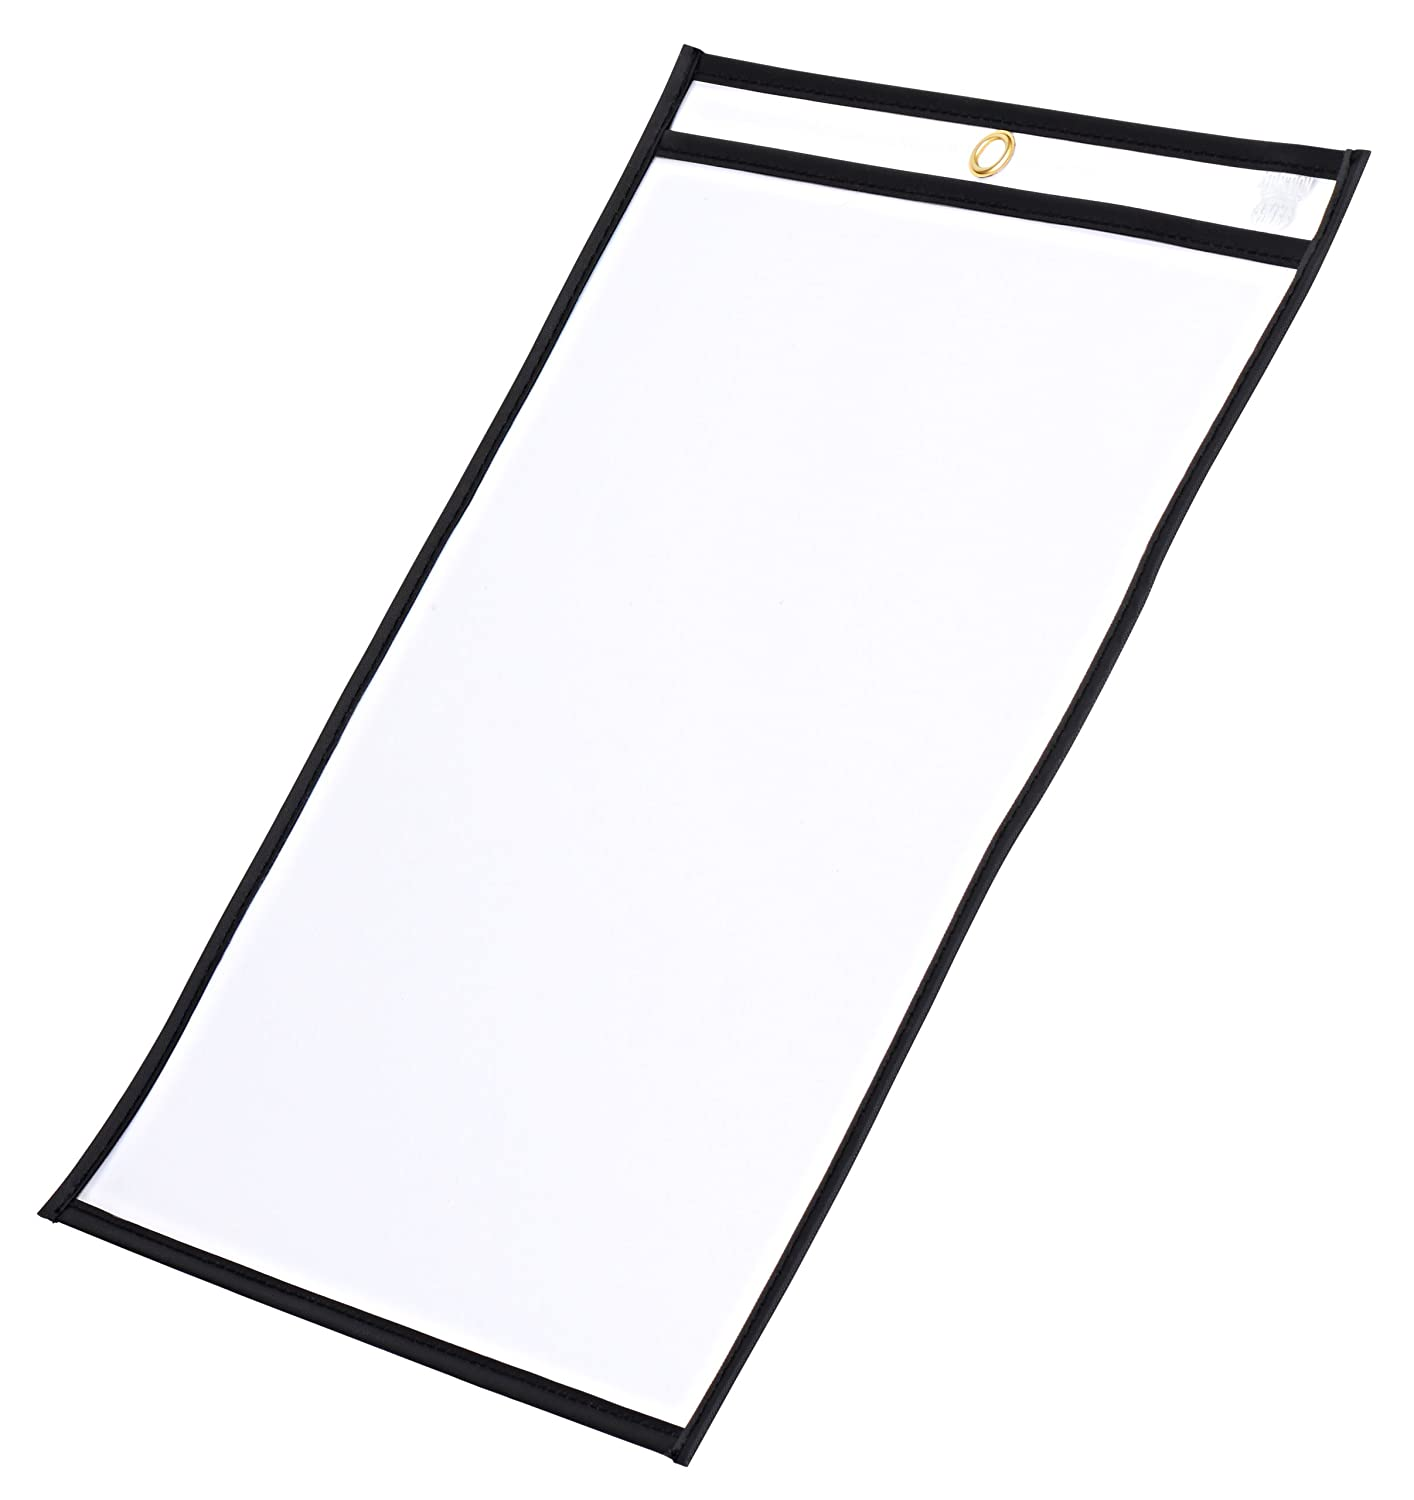 Job Shop Ticket Holders / Dry Erase Pockets, 9x12, 25 per Box, by Reflection 503 9x12